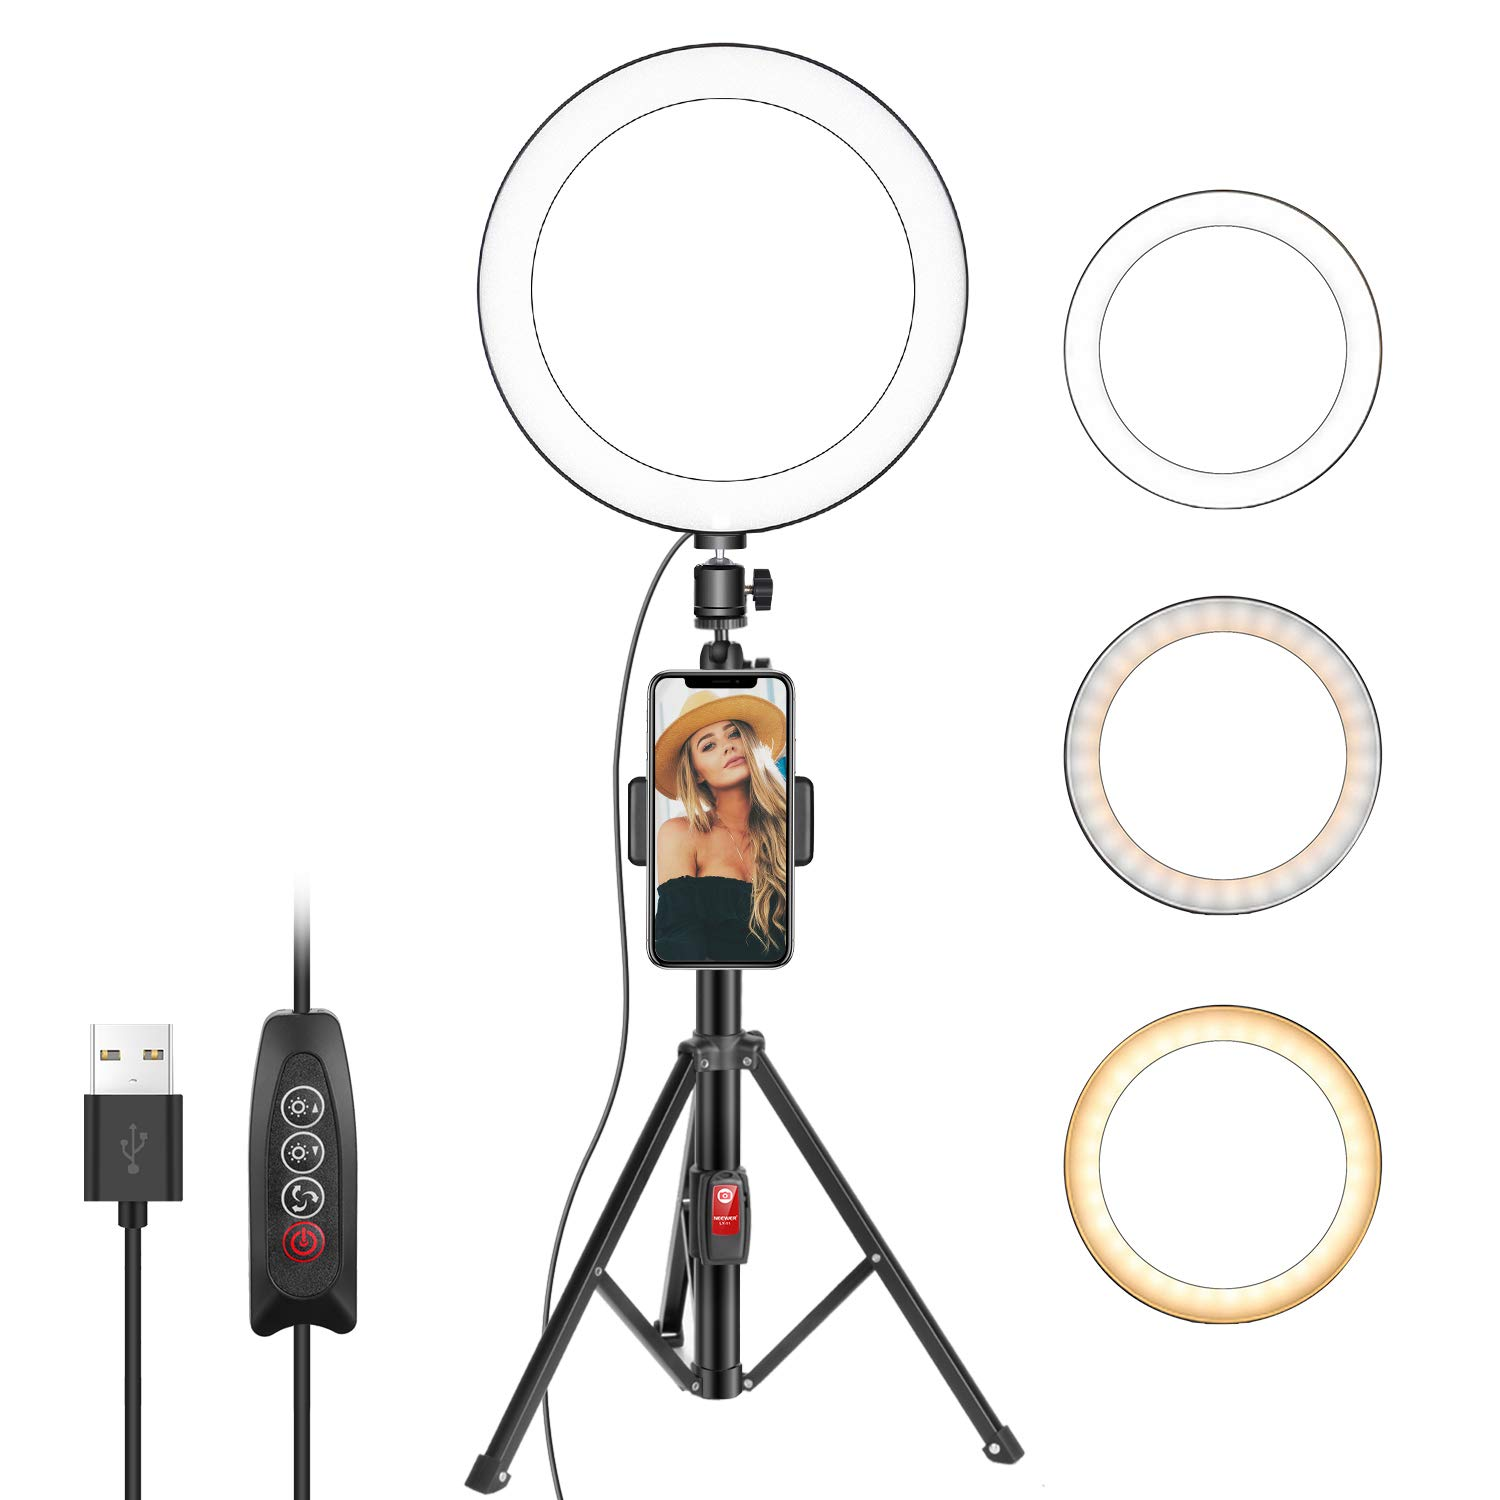 Neewer 10 Inches Selfie Ring Light with Tripod Stand and Cell Phone Holder for Live Stream/Makeup, Mini Led Camera Ringlight for YouTube Video/Photography Compatible with iPhone Xs Max XR Android by Neewer